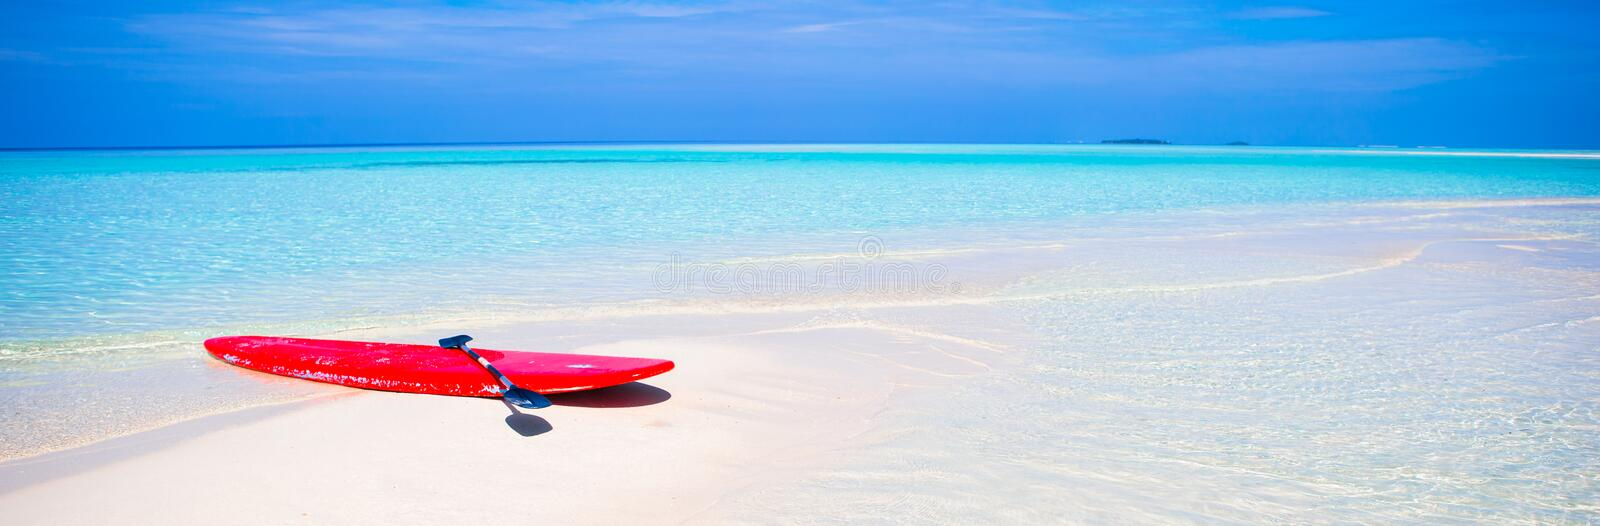 Red surfboard on white sandy beach with turquoise. Surfboard on white sandy beach with turquoise water royalty free stock image